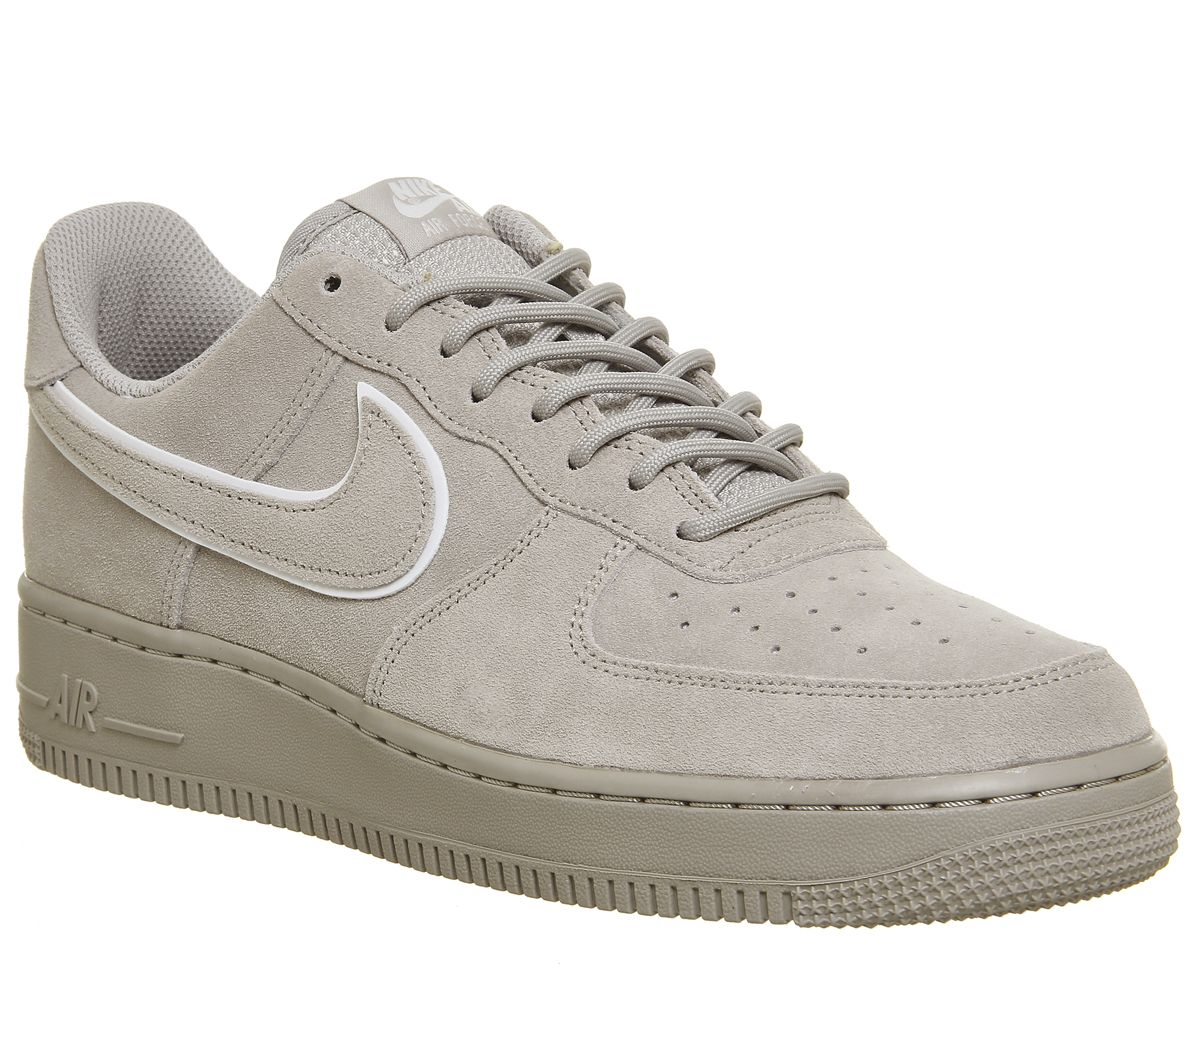 pretty nice d547d fa06d More Colours (4). More Colours (4). Air Force 1 Lv8 Trainers